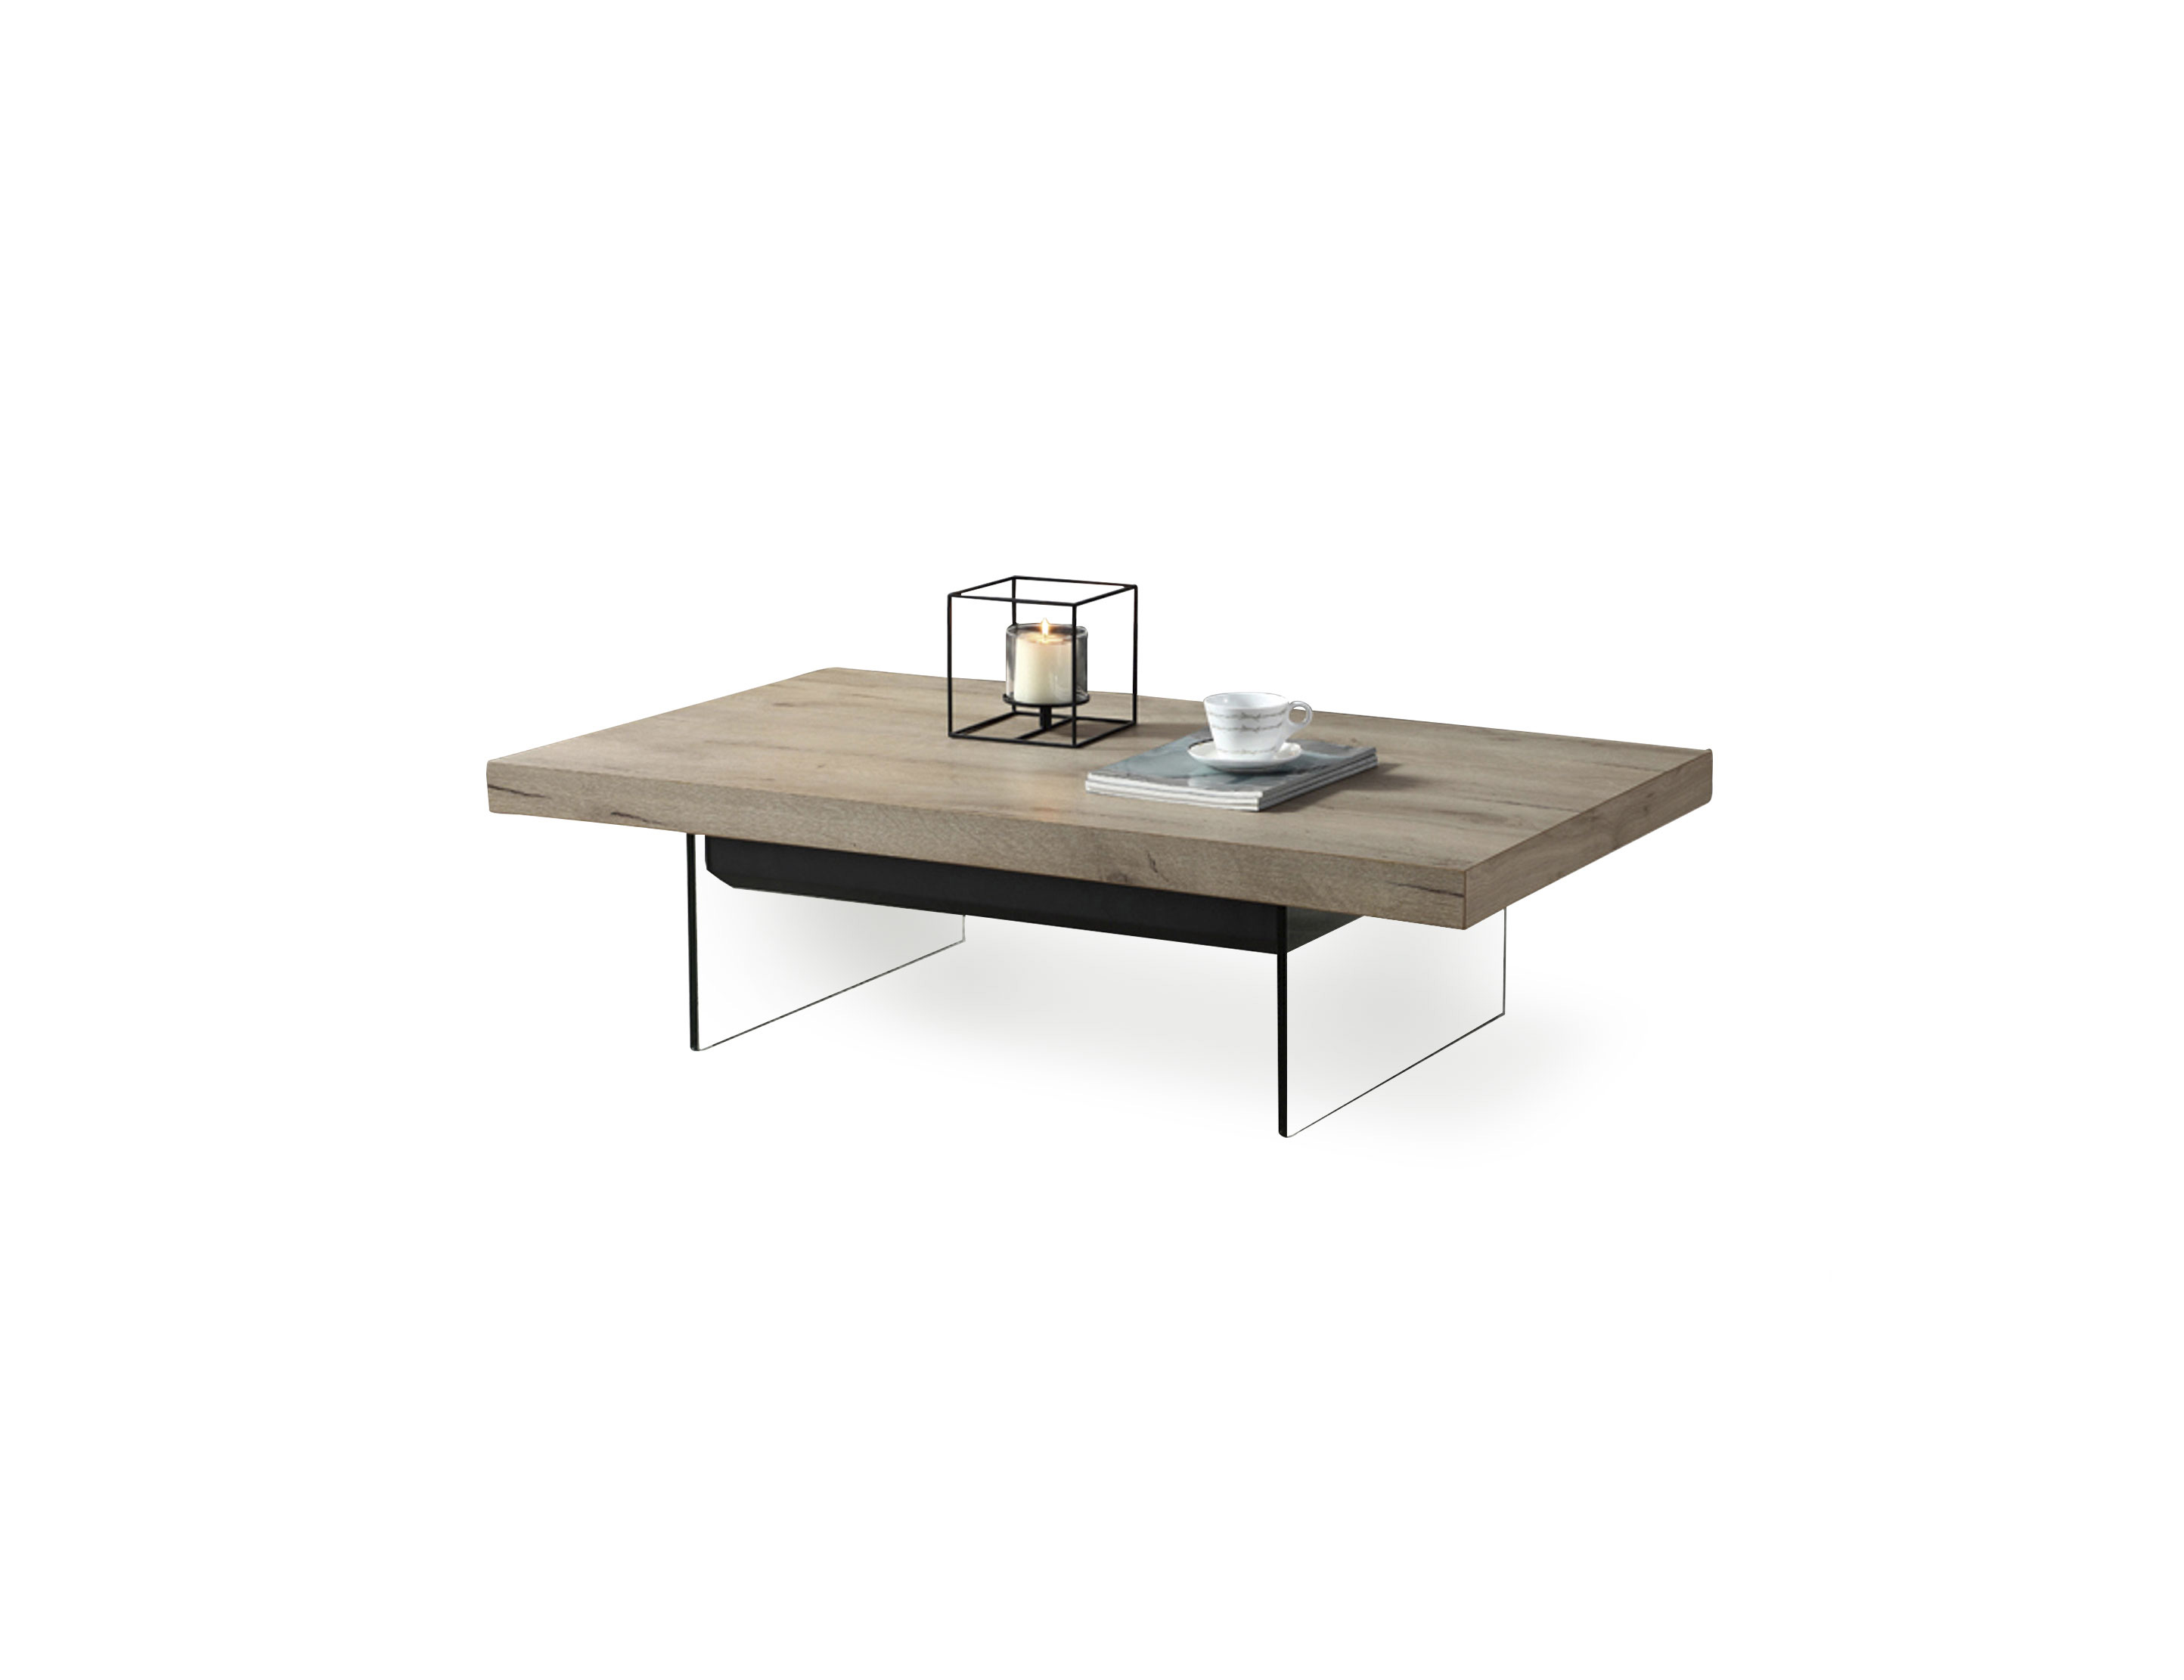 The Cadence Wood Lift Top Table With A Glass Base Expand Furniture Folding Tables Smarter Wall Beds Space Savers